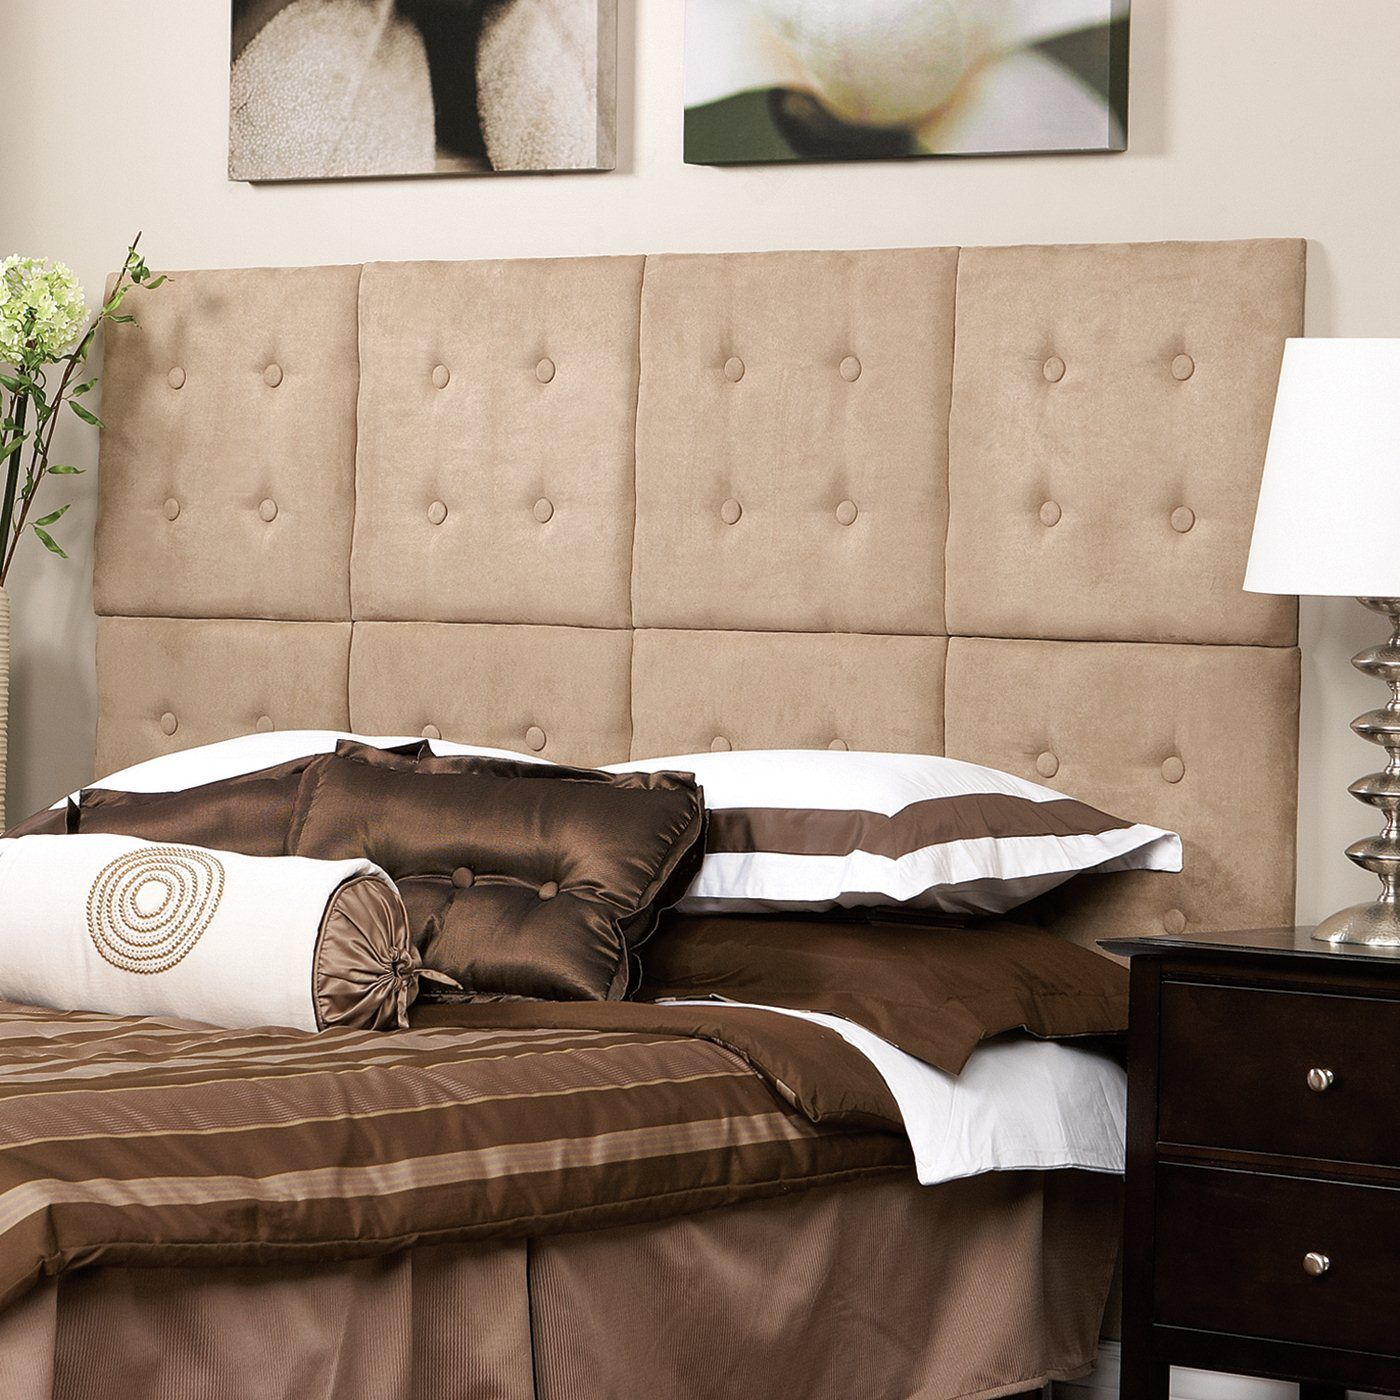 Upholstered Wall Panel Headboard With Elegant Net Design Fn19 Luxe Panels